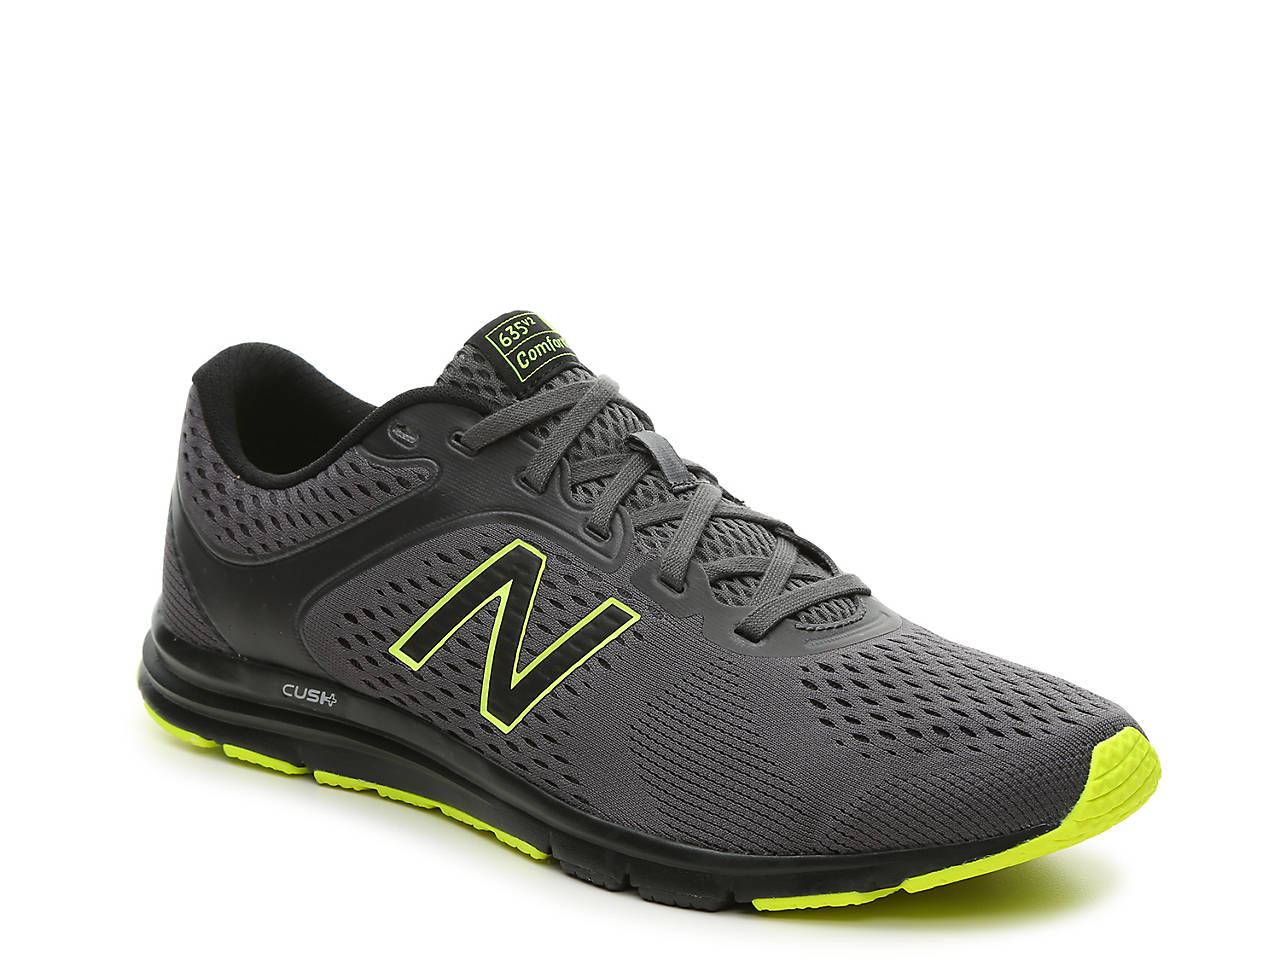 timeless design 63a7a f3158 New Balance 635 v2 Lightweight Running Shoe - Men s Men s Shoes   DSW